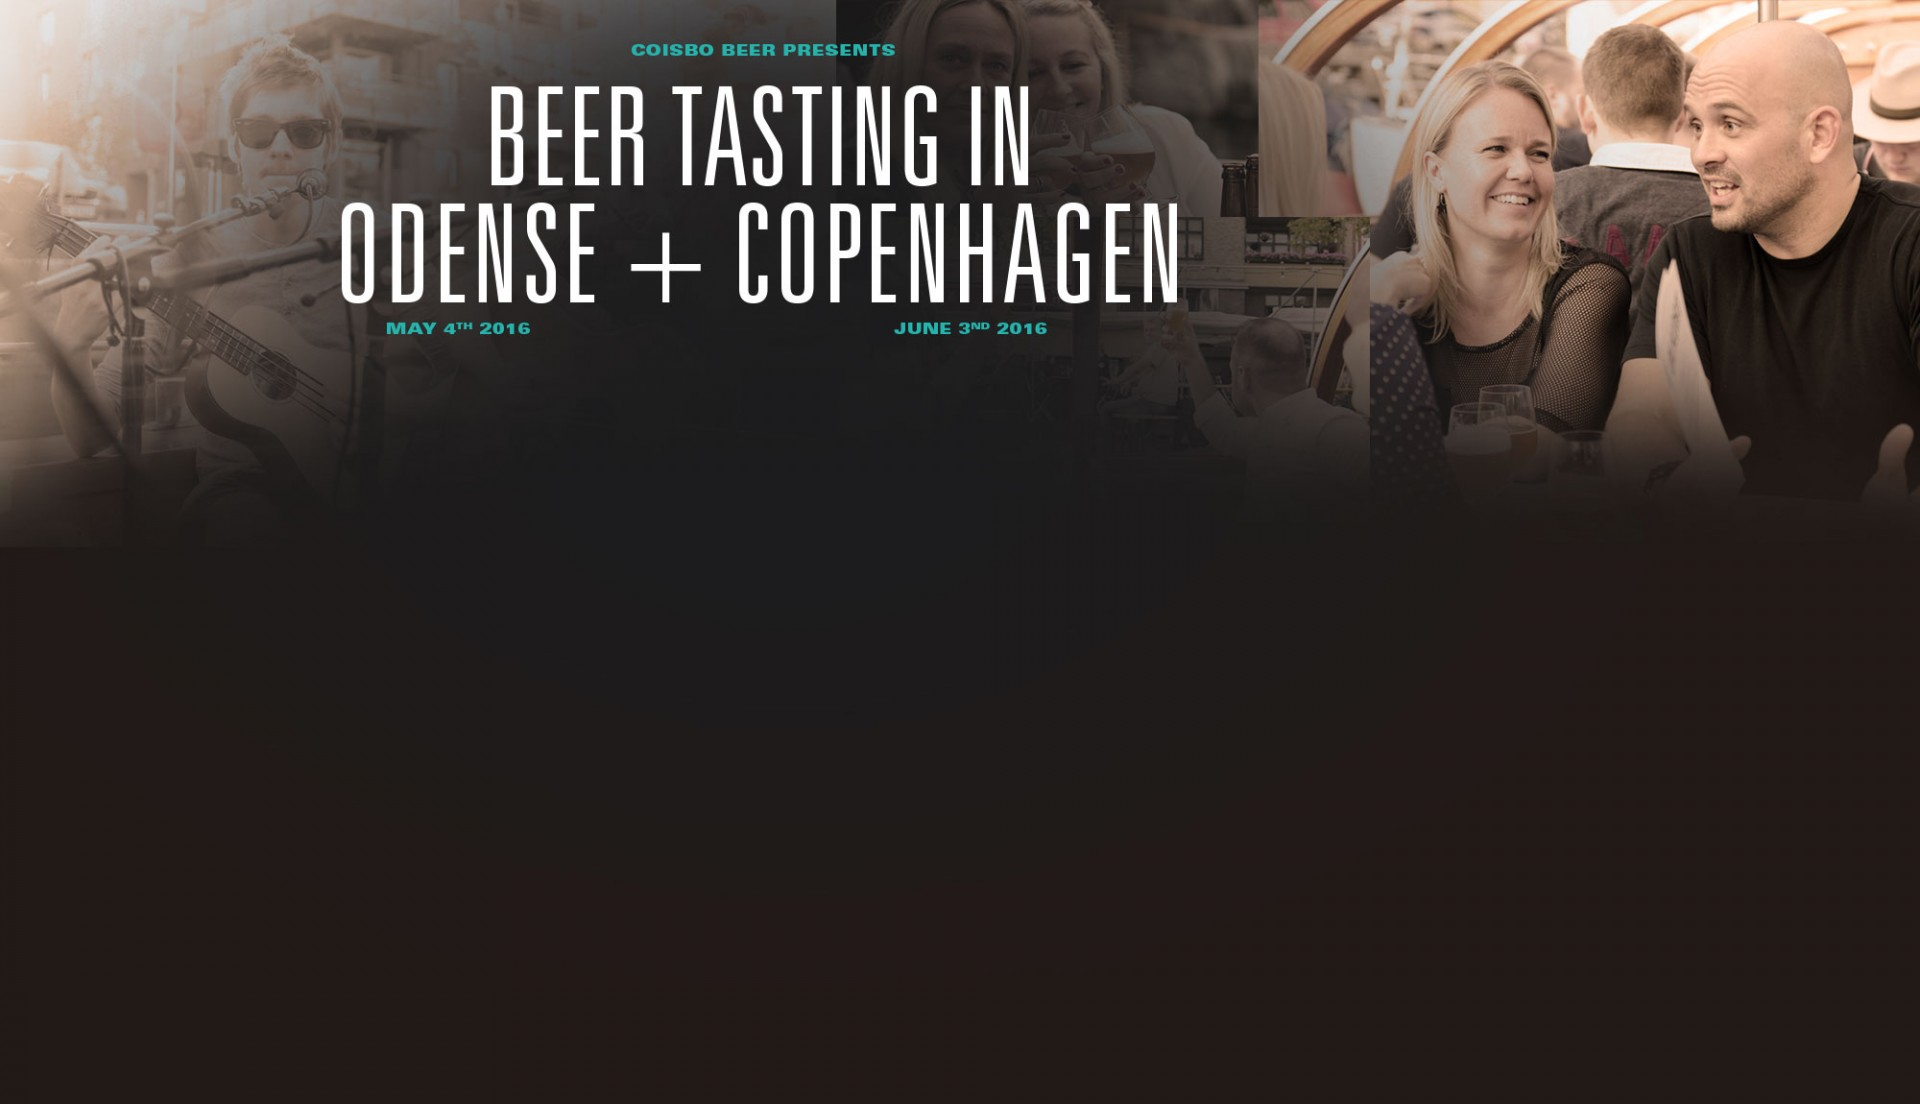 Beer tasting in Odense and Copenhagen in 2016